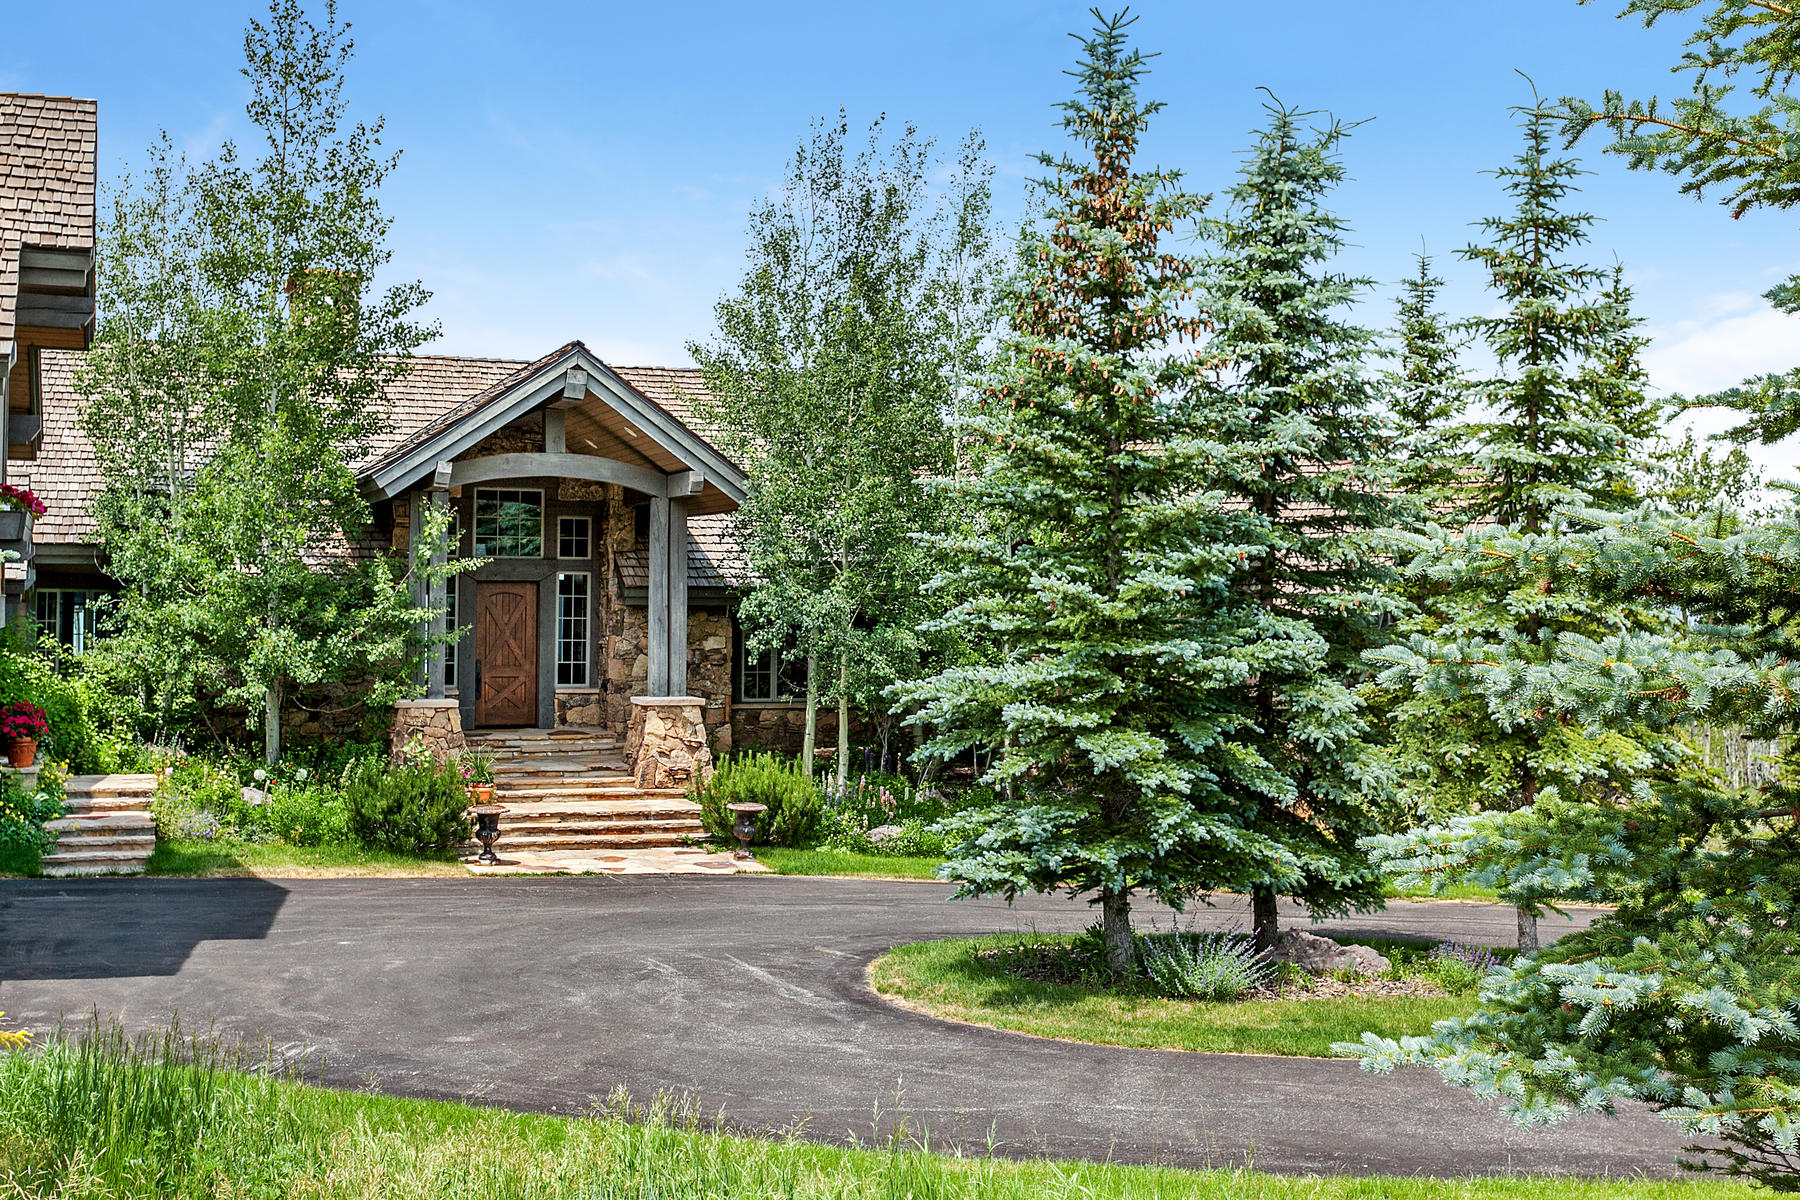 Single Family Home for Active at Cordillera Custom Home on 18th Fairway 342 Gore Trail Edwards, Colorado 81632 United States